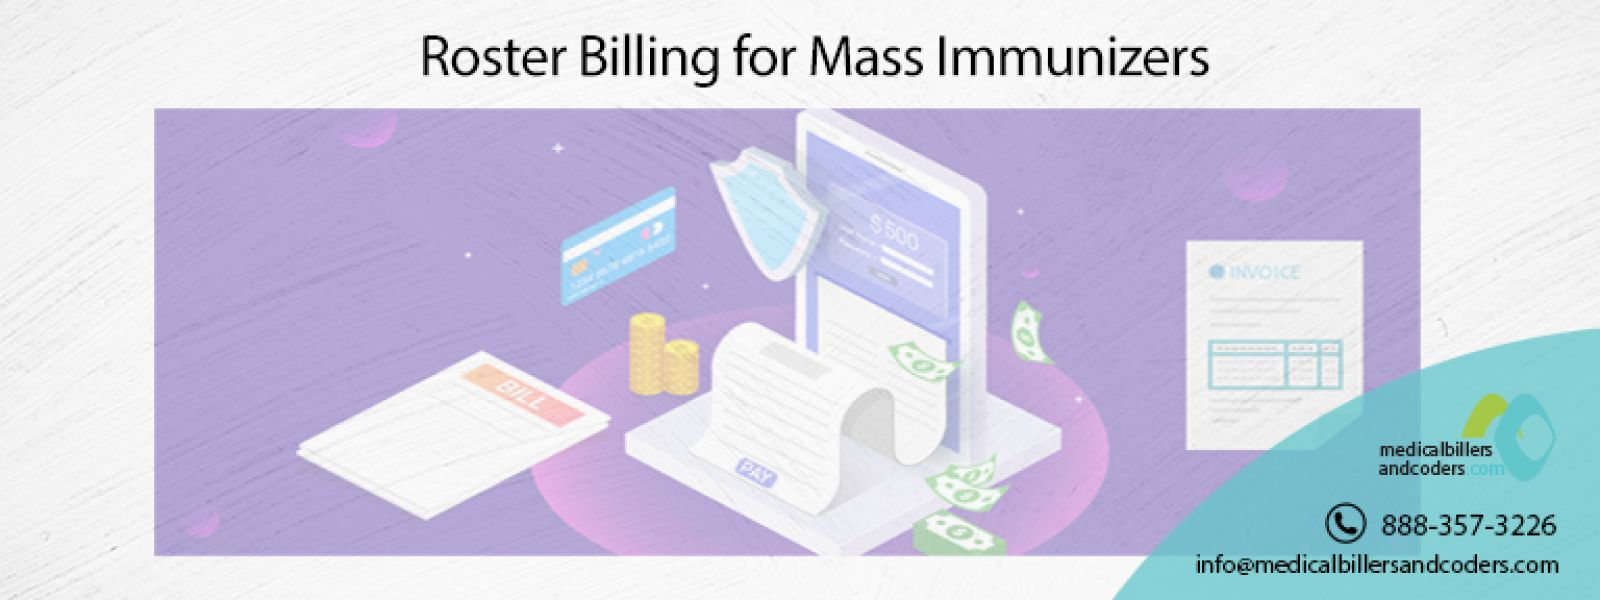 Roster Billing for Mass Immunizers